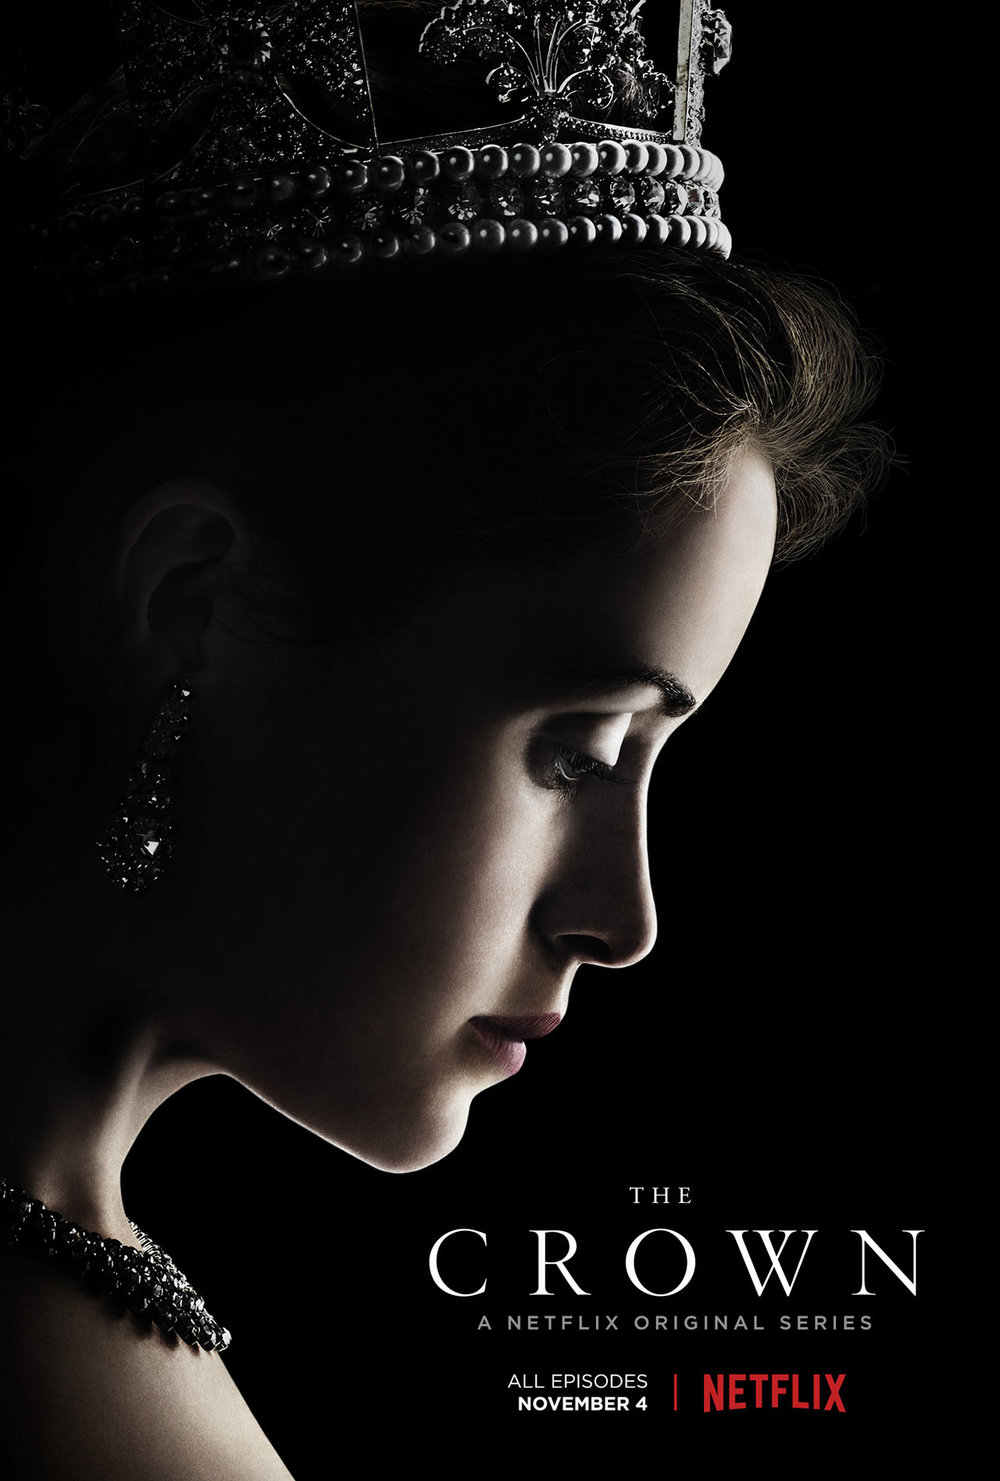 Barb: The Crown